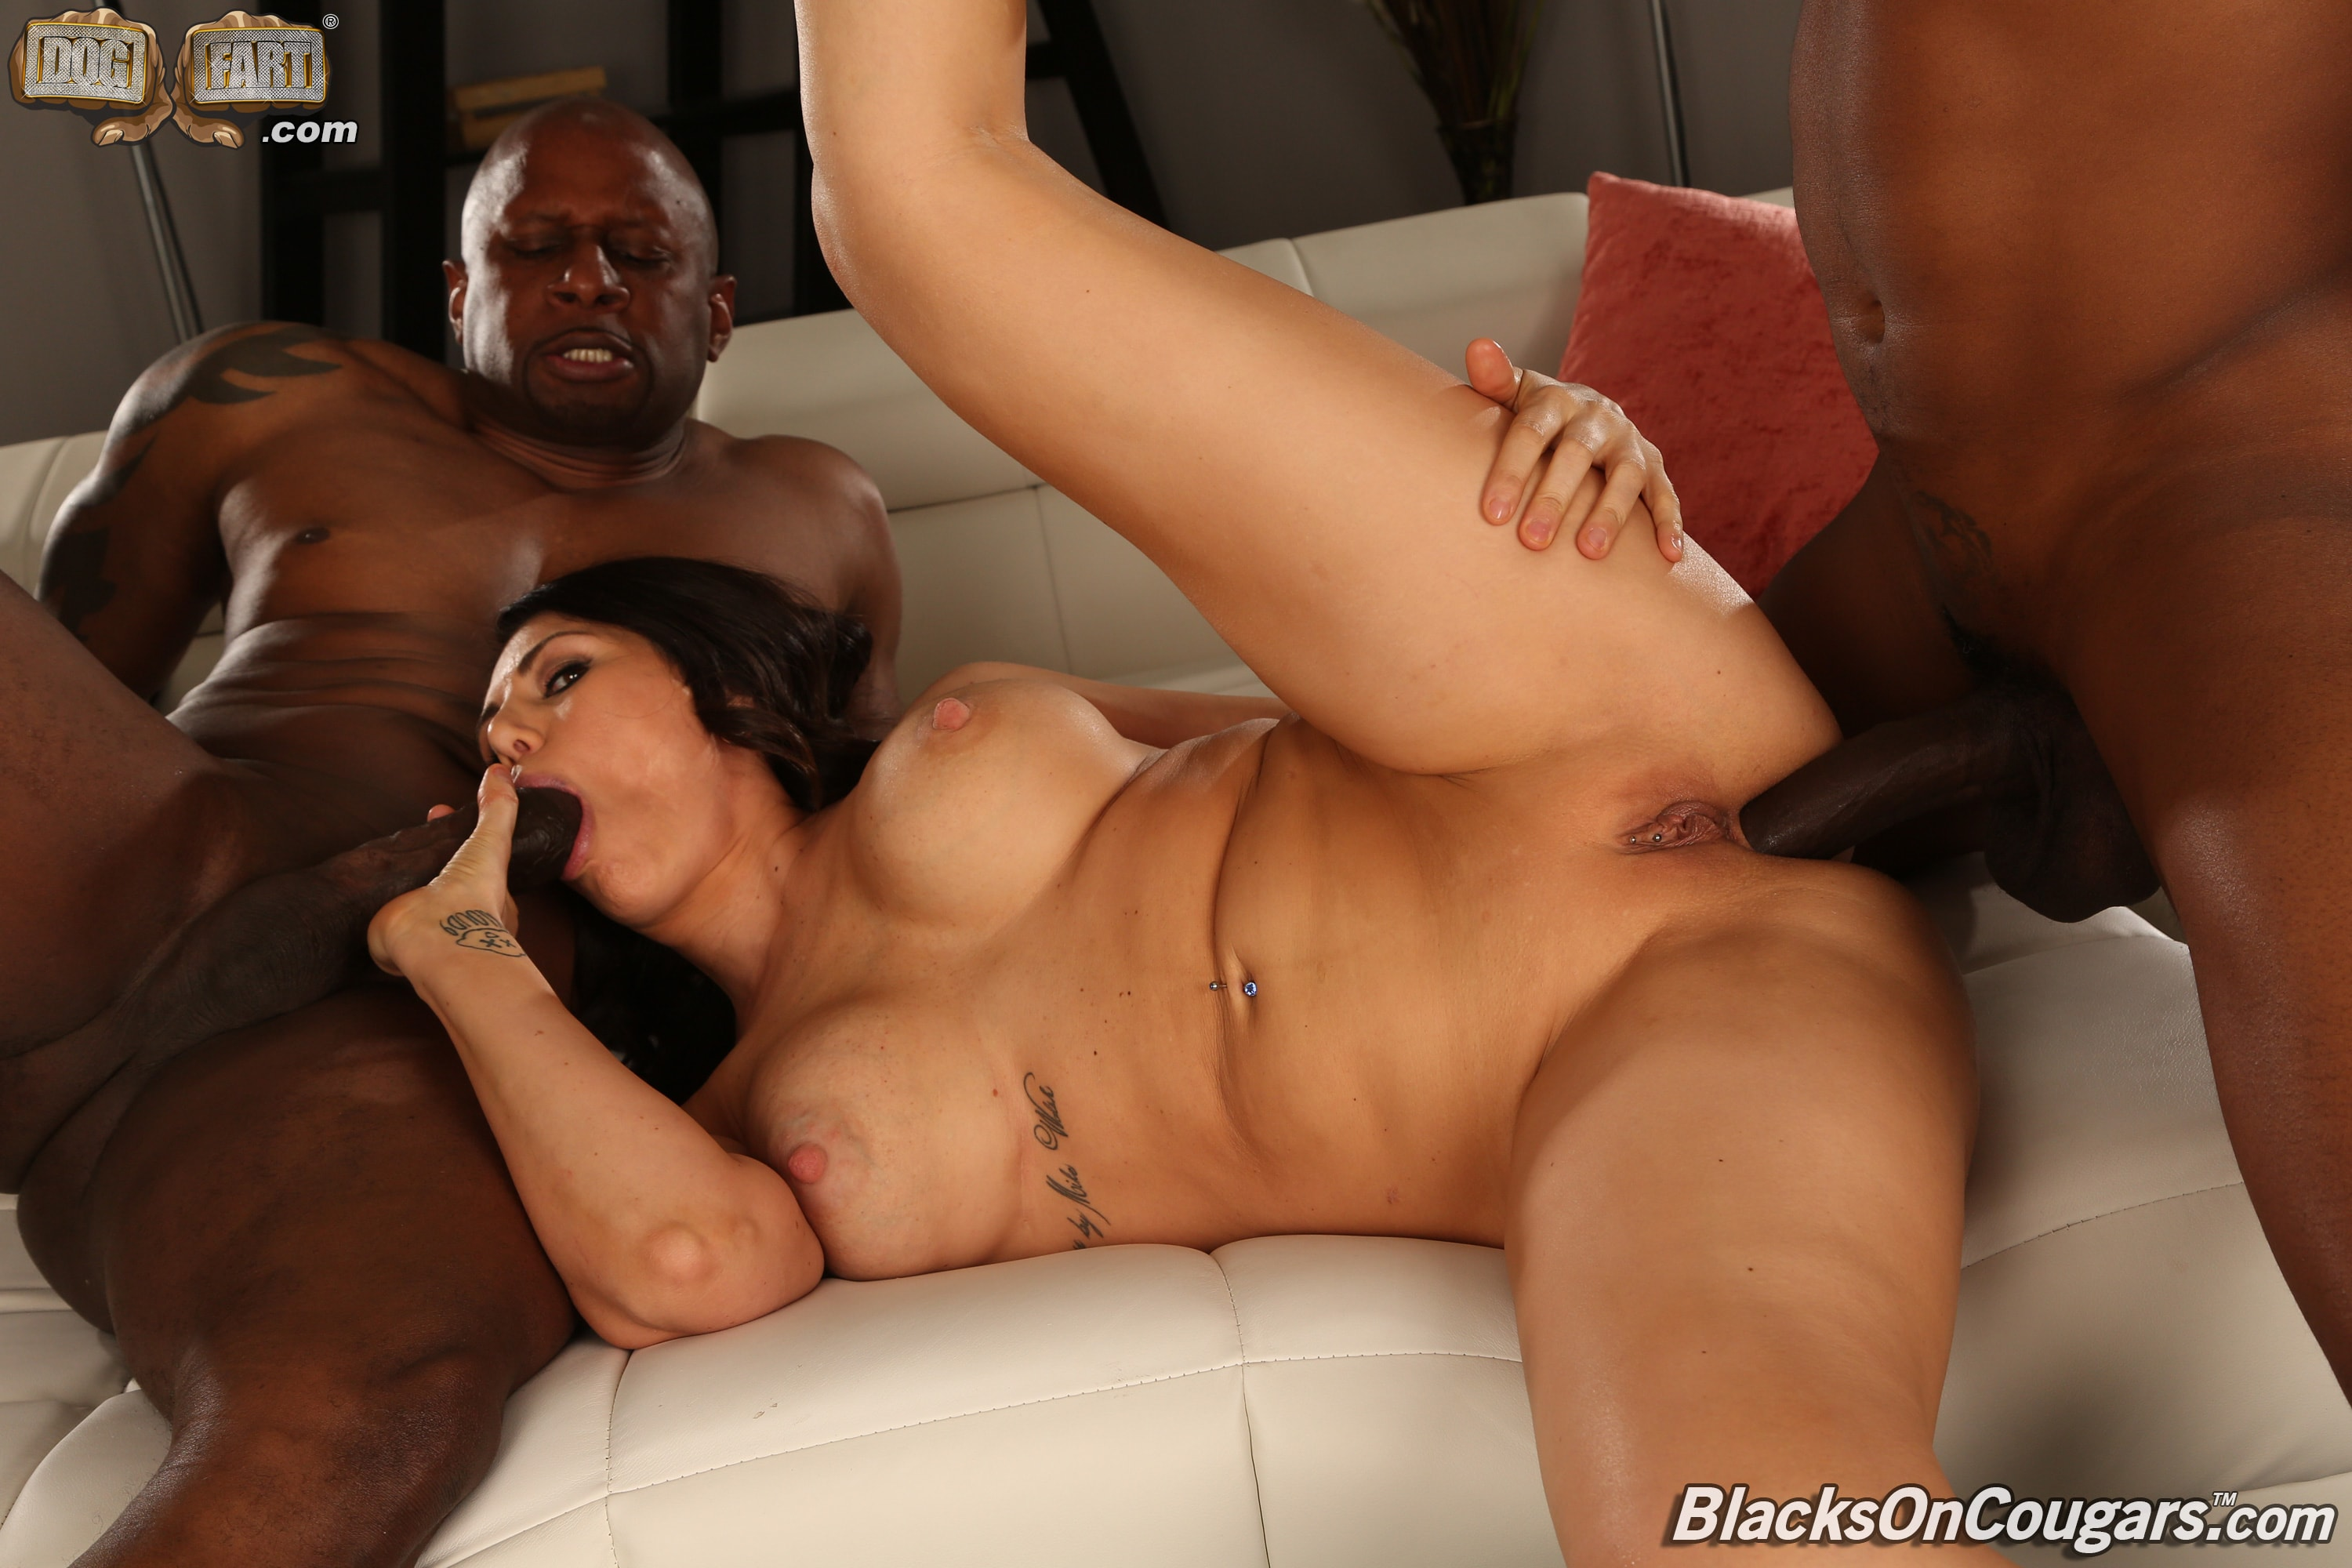 Dogfart '- Blacks On Cougars - Scene 2' starring Makayla Cox (Photo 24)